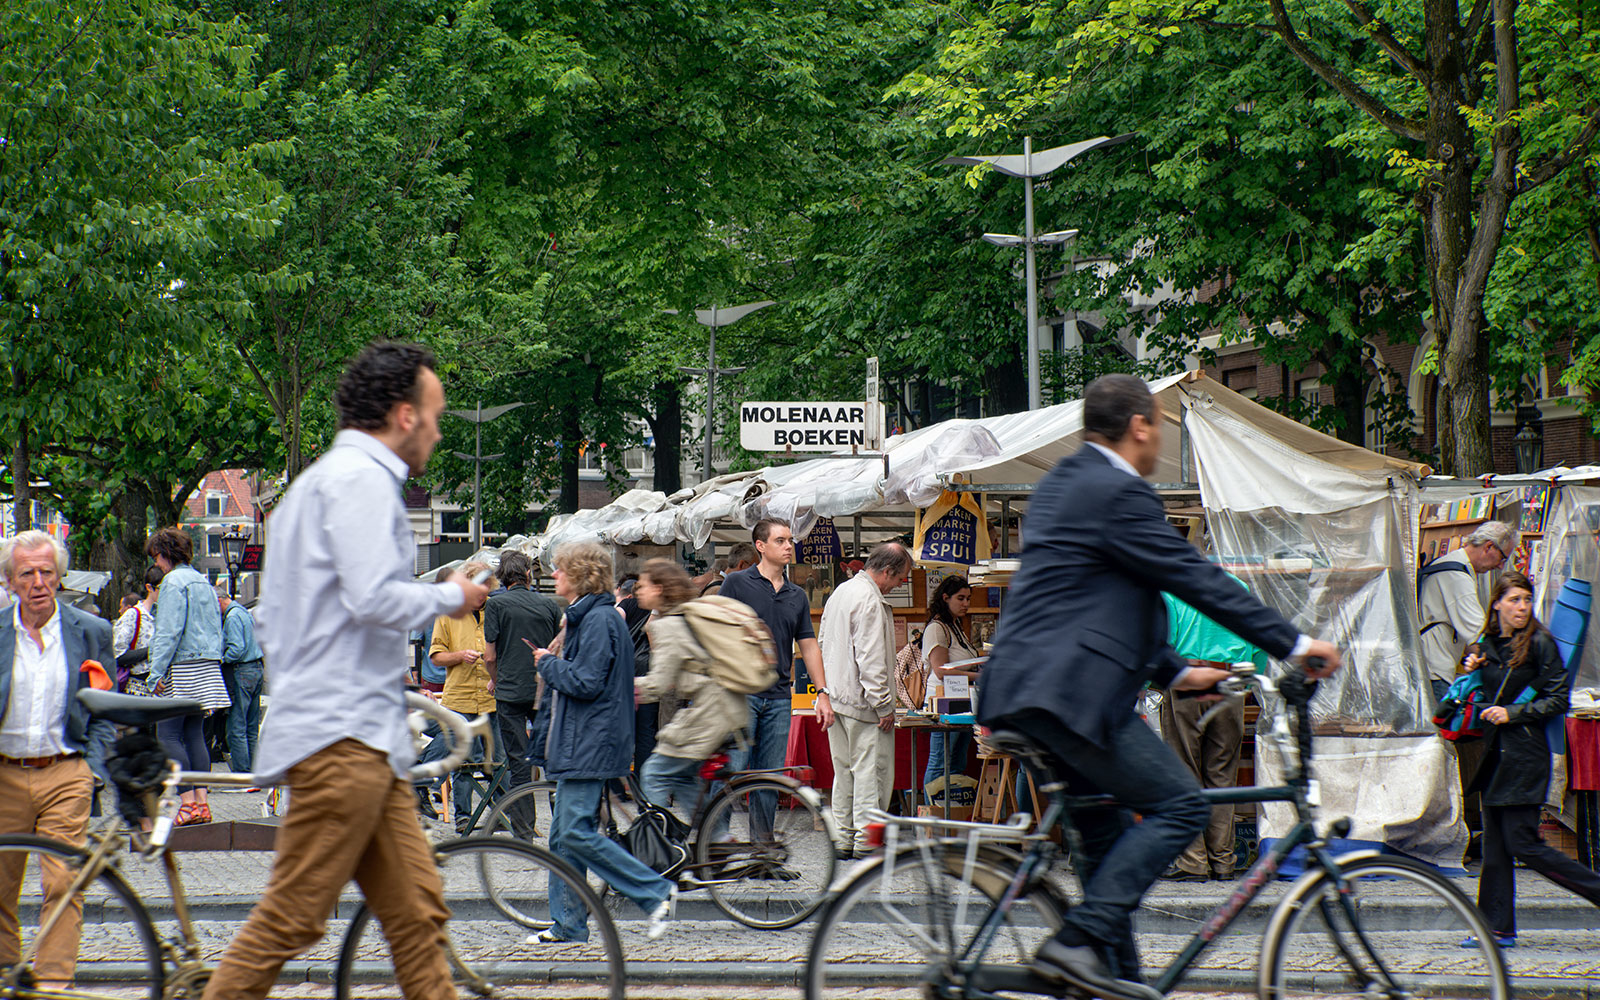 Amsterdam's Best Outdoor Markets for Unique Finds